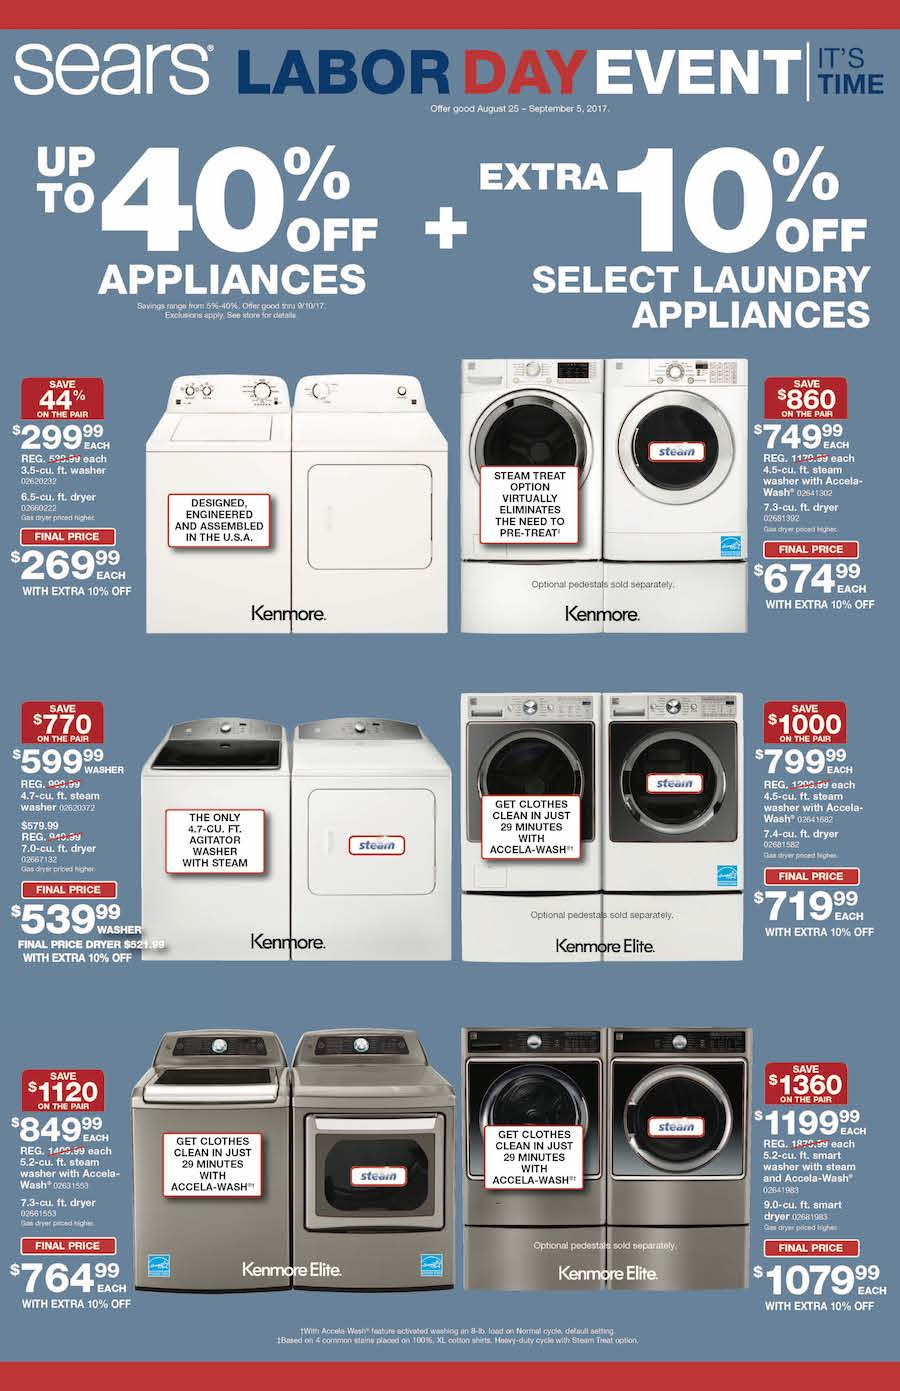 8-25-17_NATL_LAUNDRY_flyer_11X17_COLOR